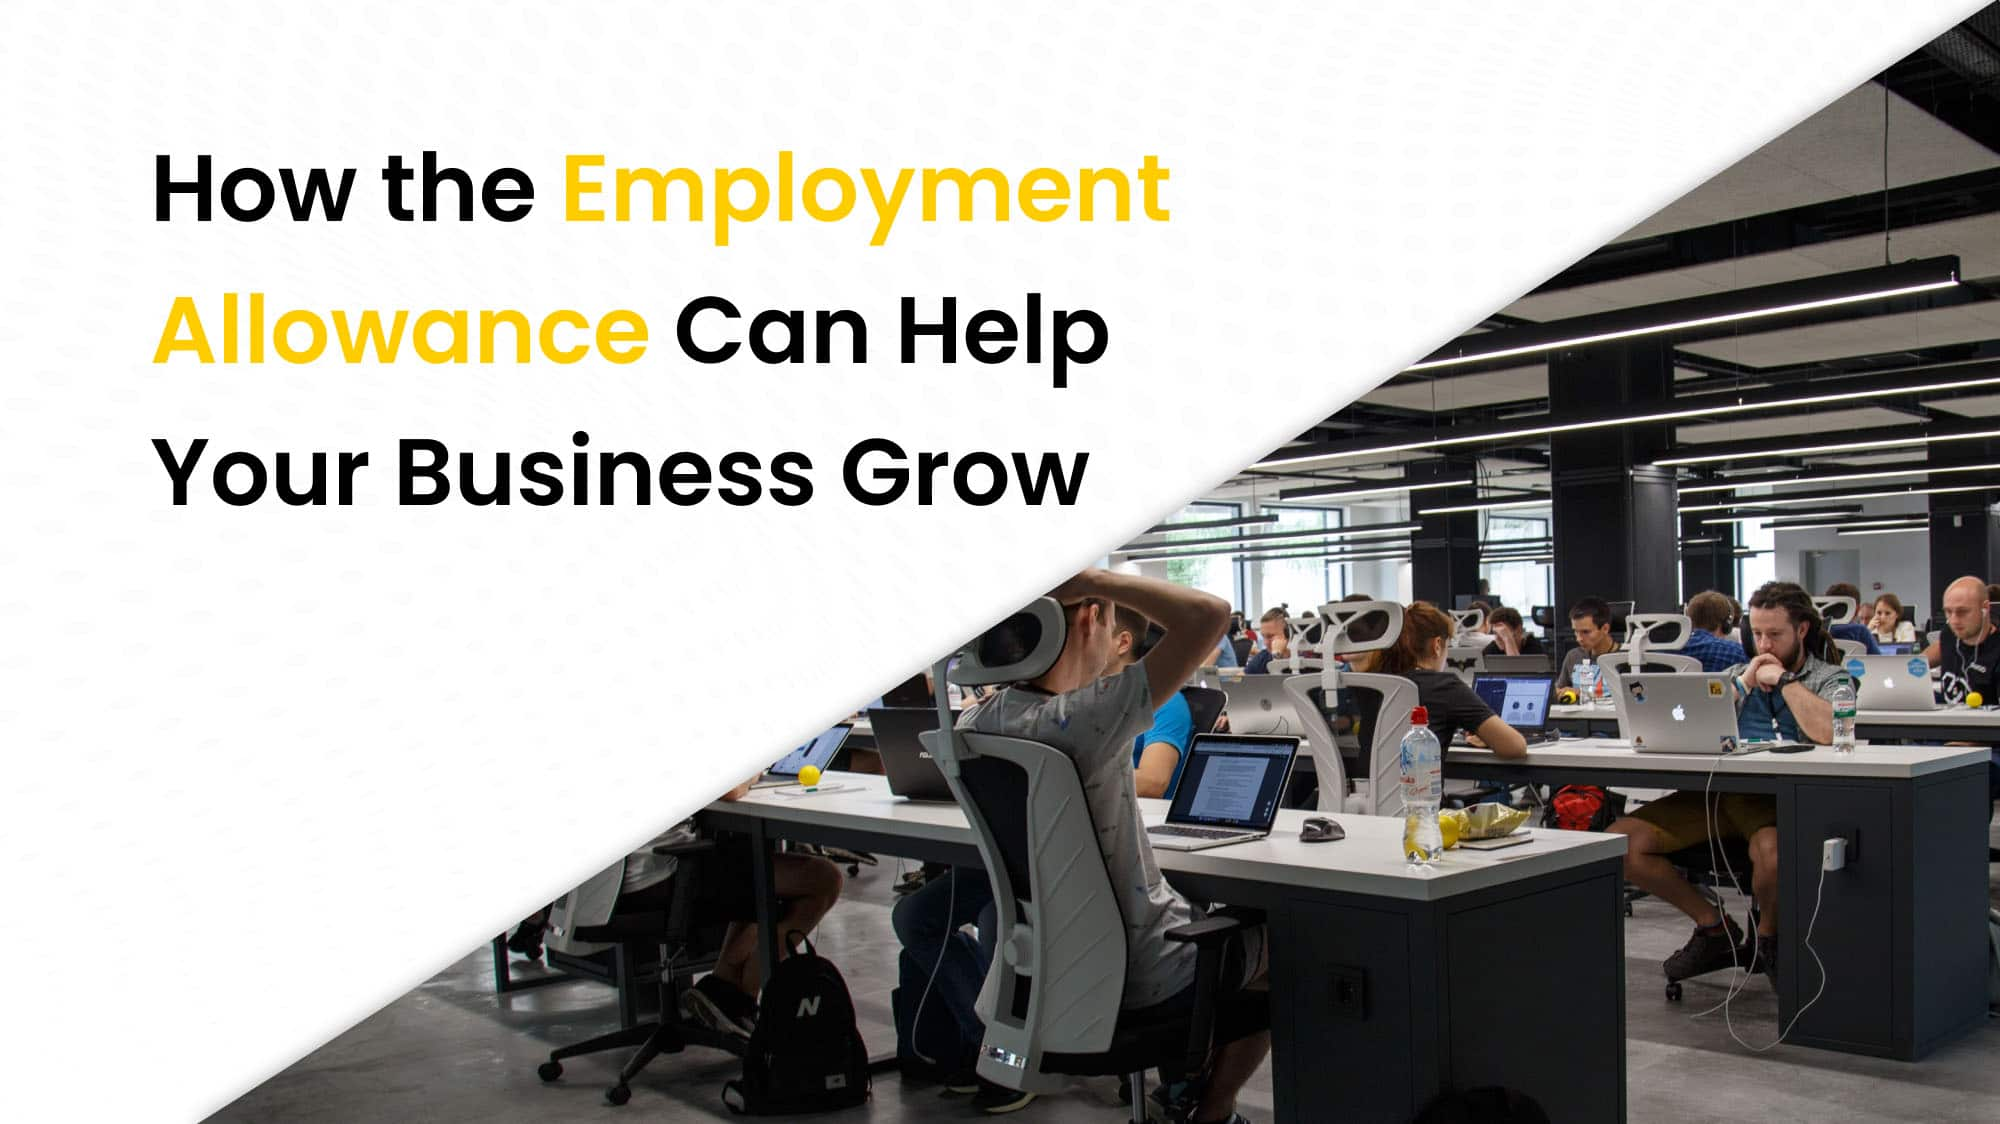 How the employment allowance can help your business grow